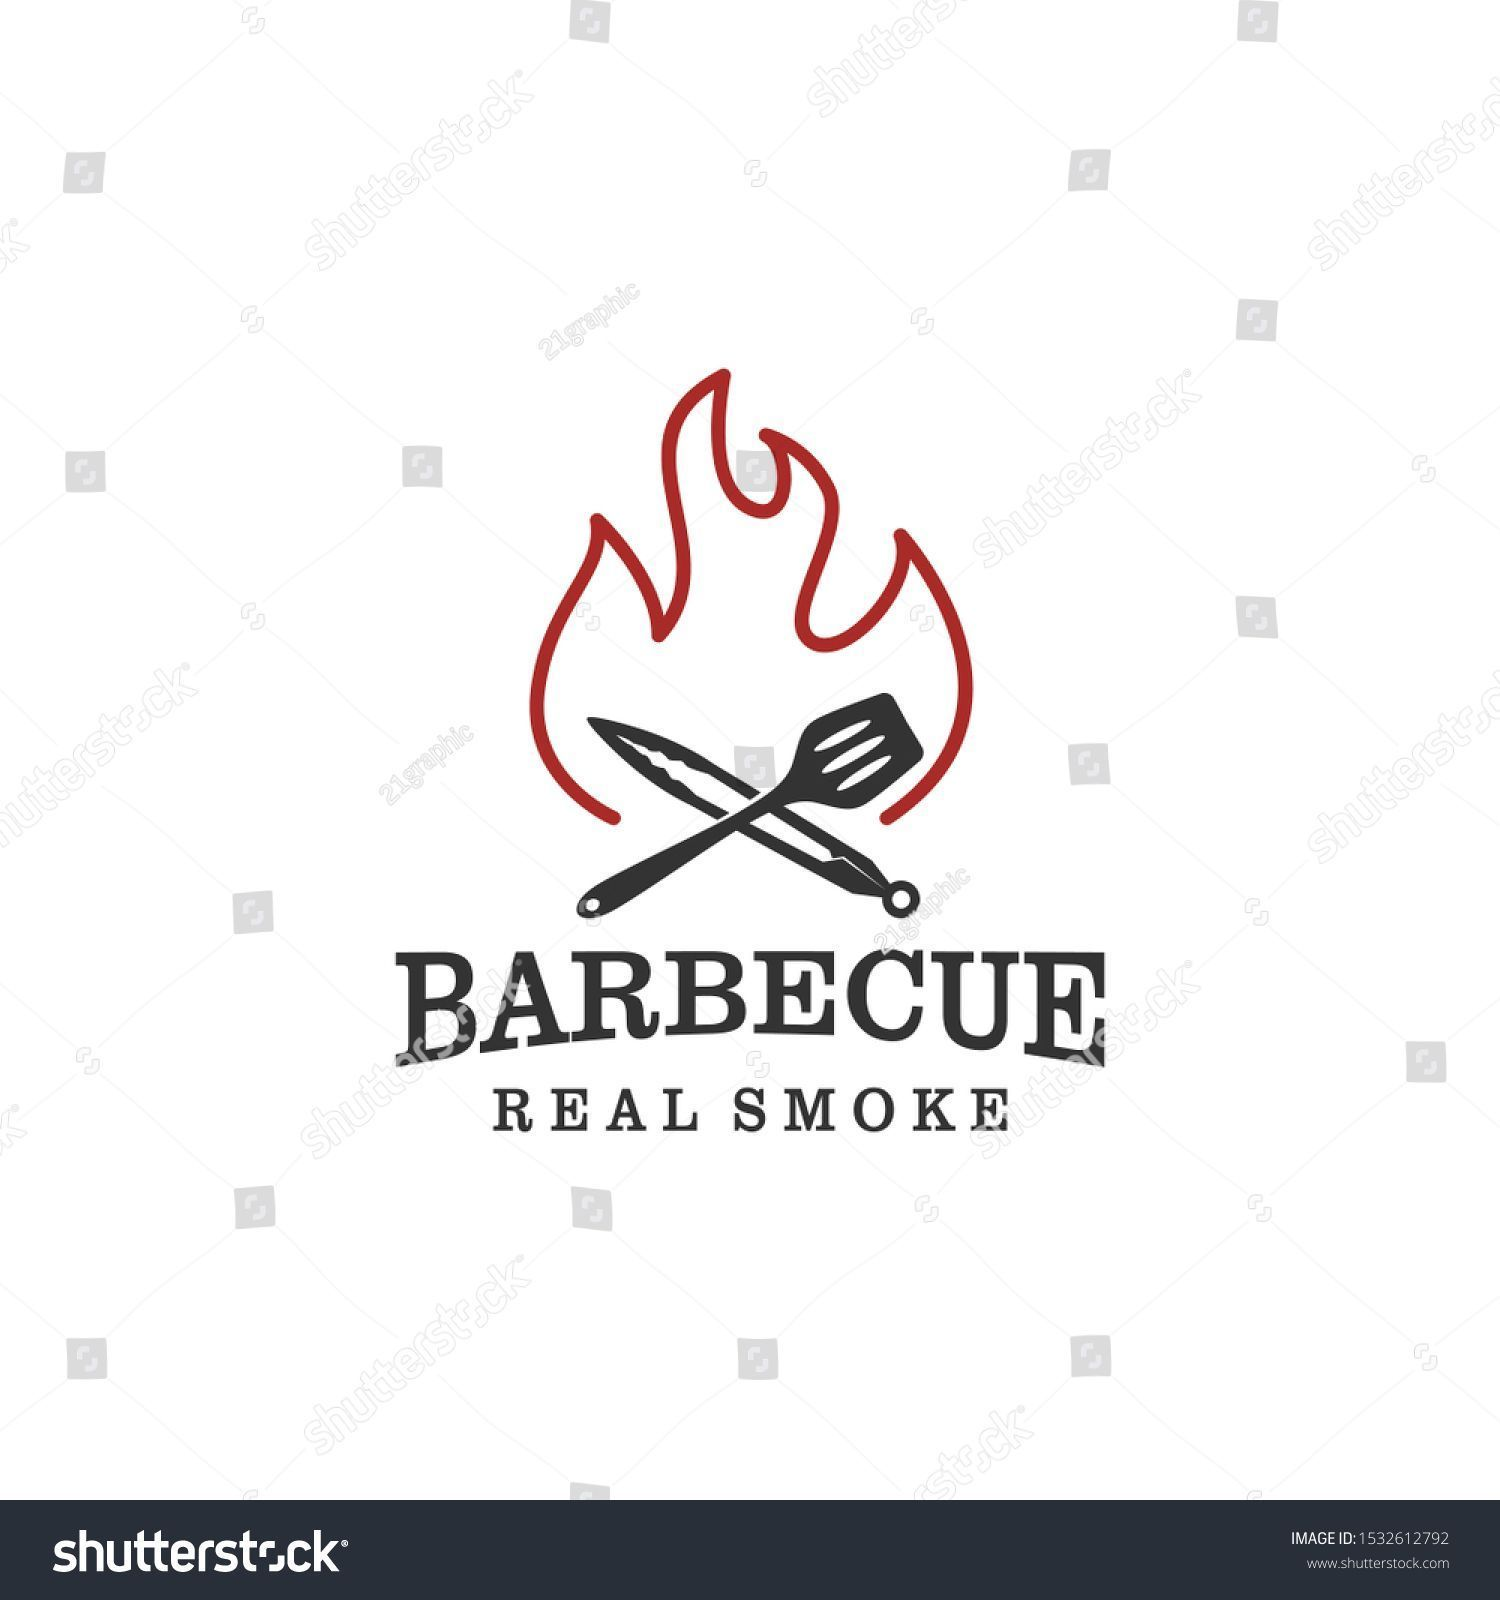 restaurant food drink logo design  barbeque fire meat sausage spatula element Barbecue bbq grill restaurant food drink logo design  barbeque fire meat sausage spatula ele...